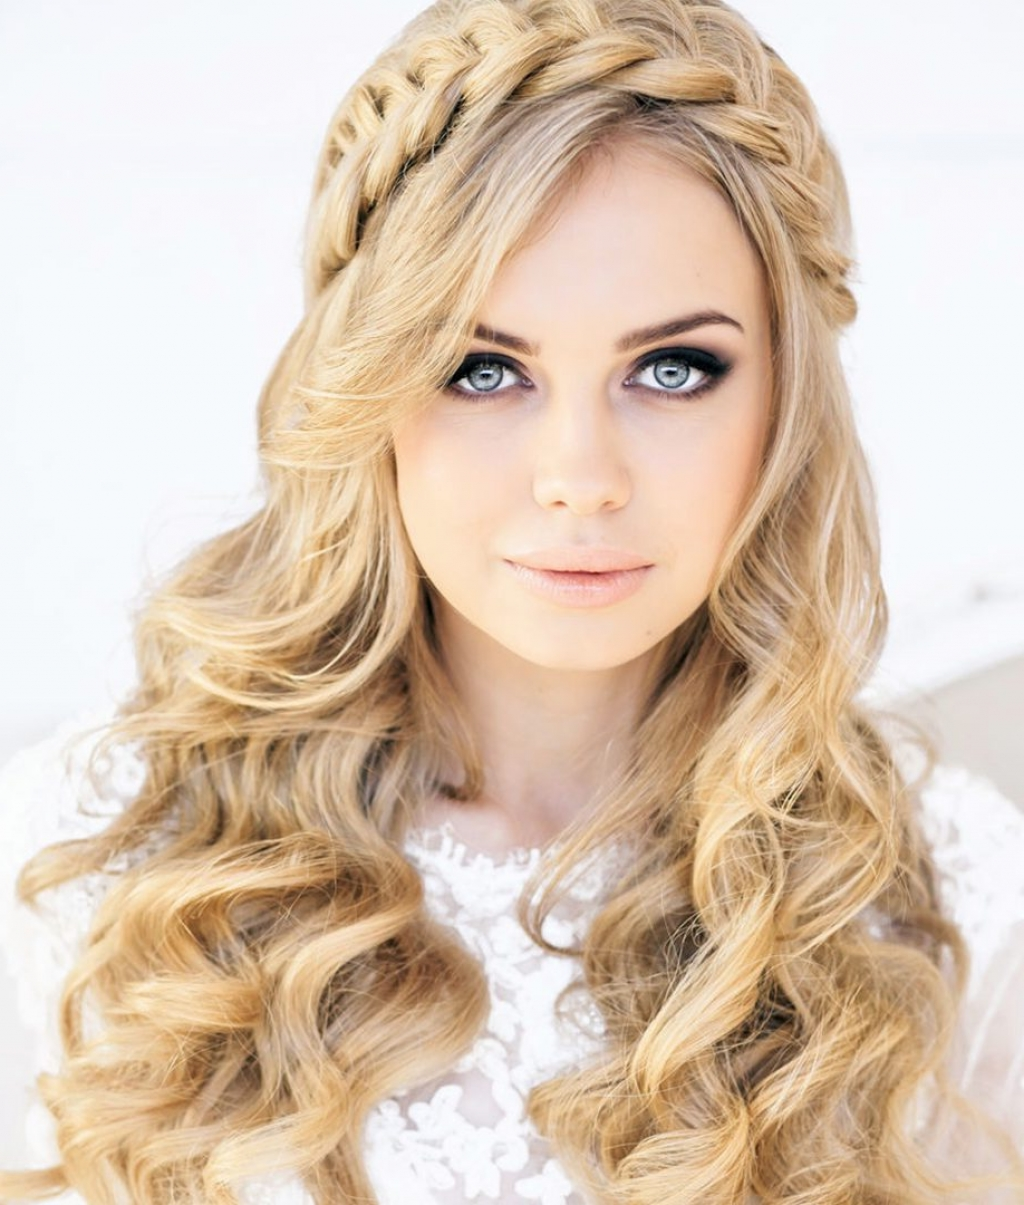 √ 24+ Inspirational Wedding Hairstyles For Bridesmaids: Quick Easy In Current Quick Wedding Hairstyles (View 2 of 15)